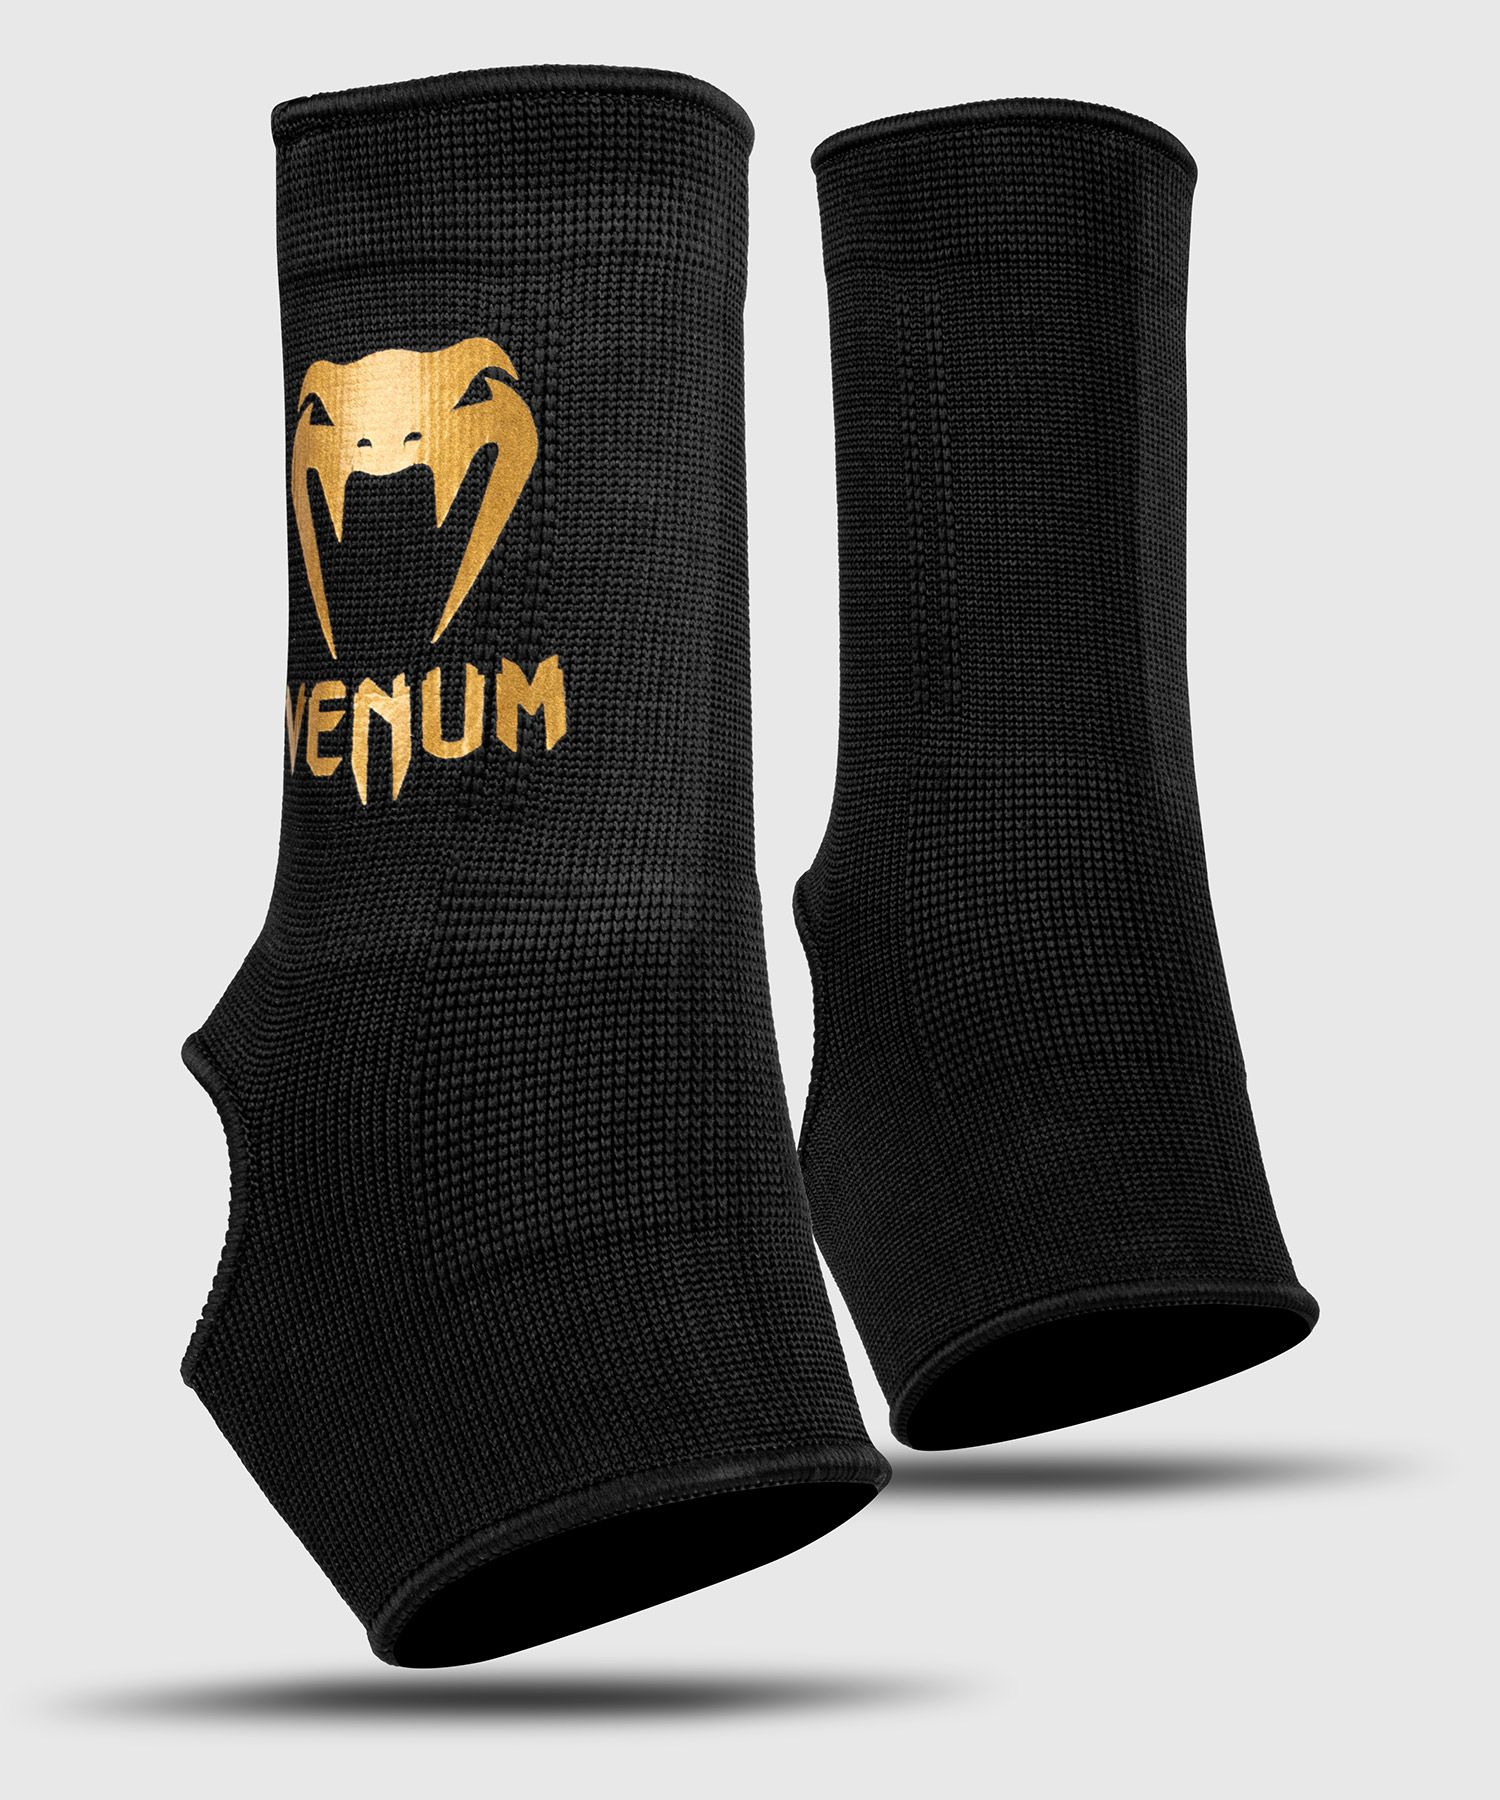 Venum Kontact Ankle Support Guard - Black/Gold